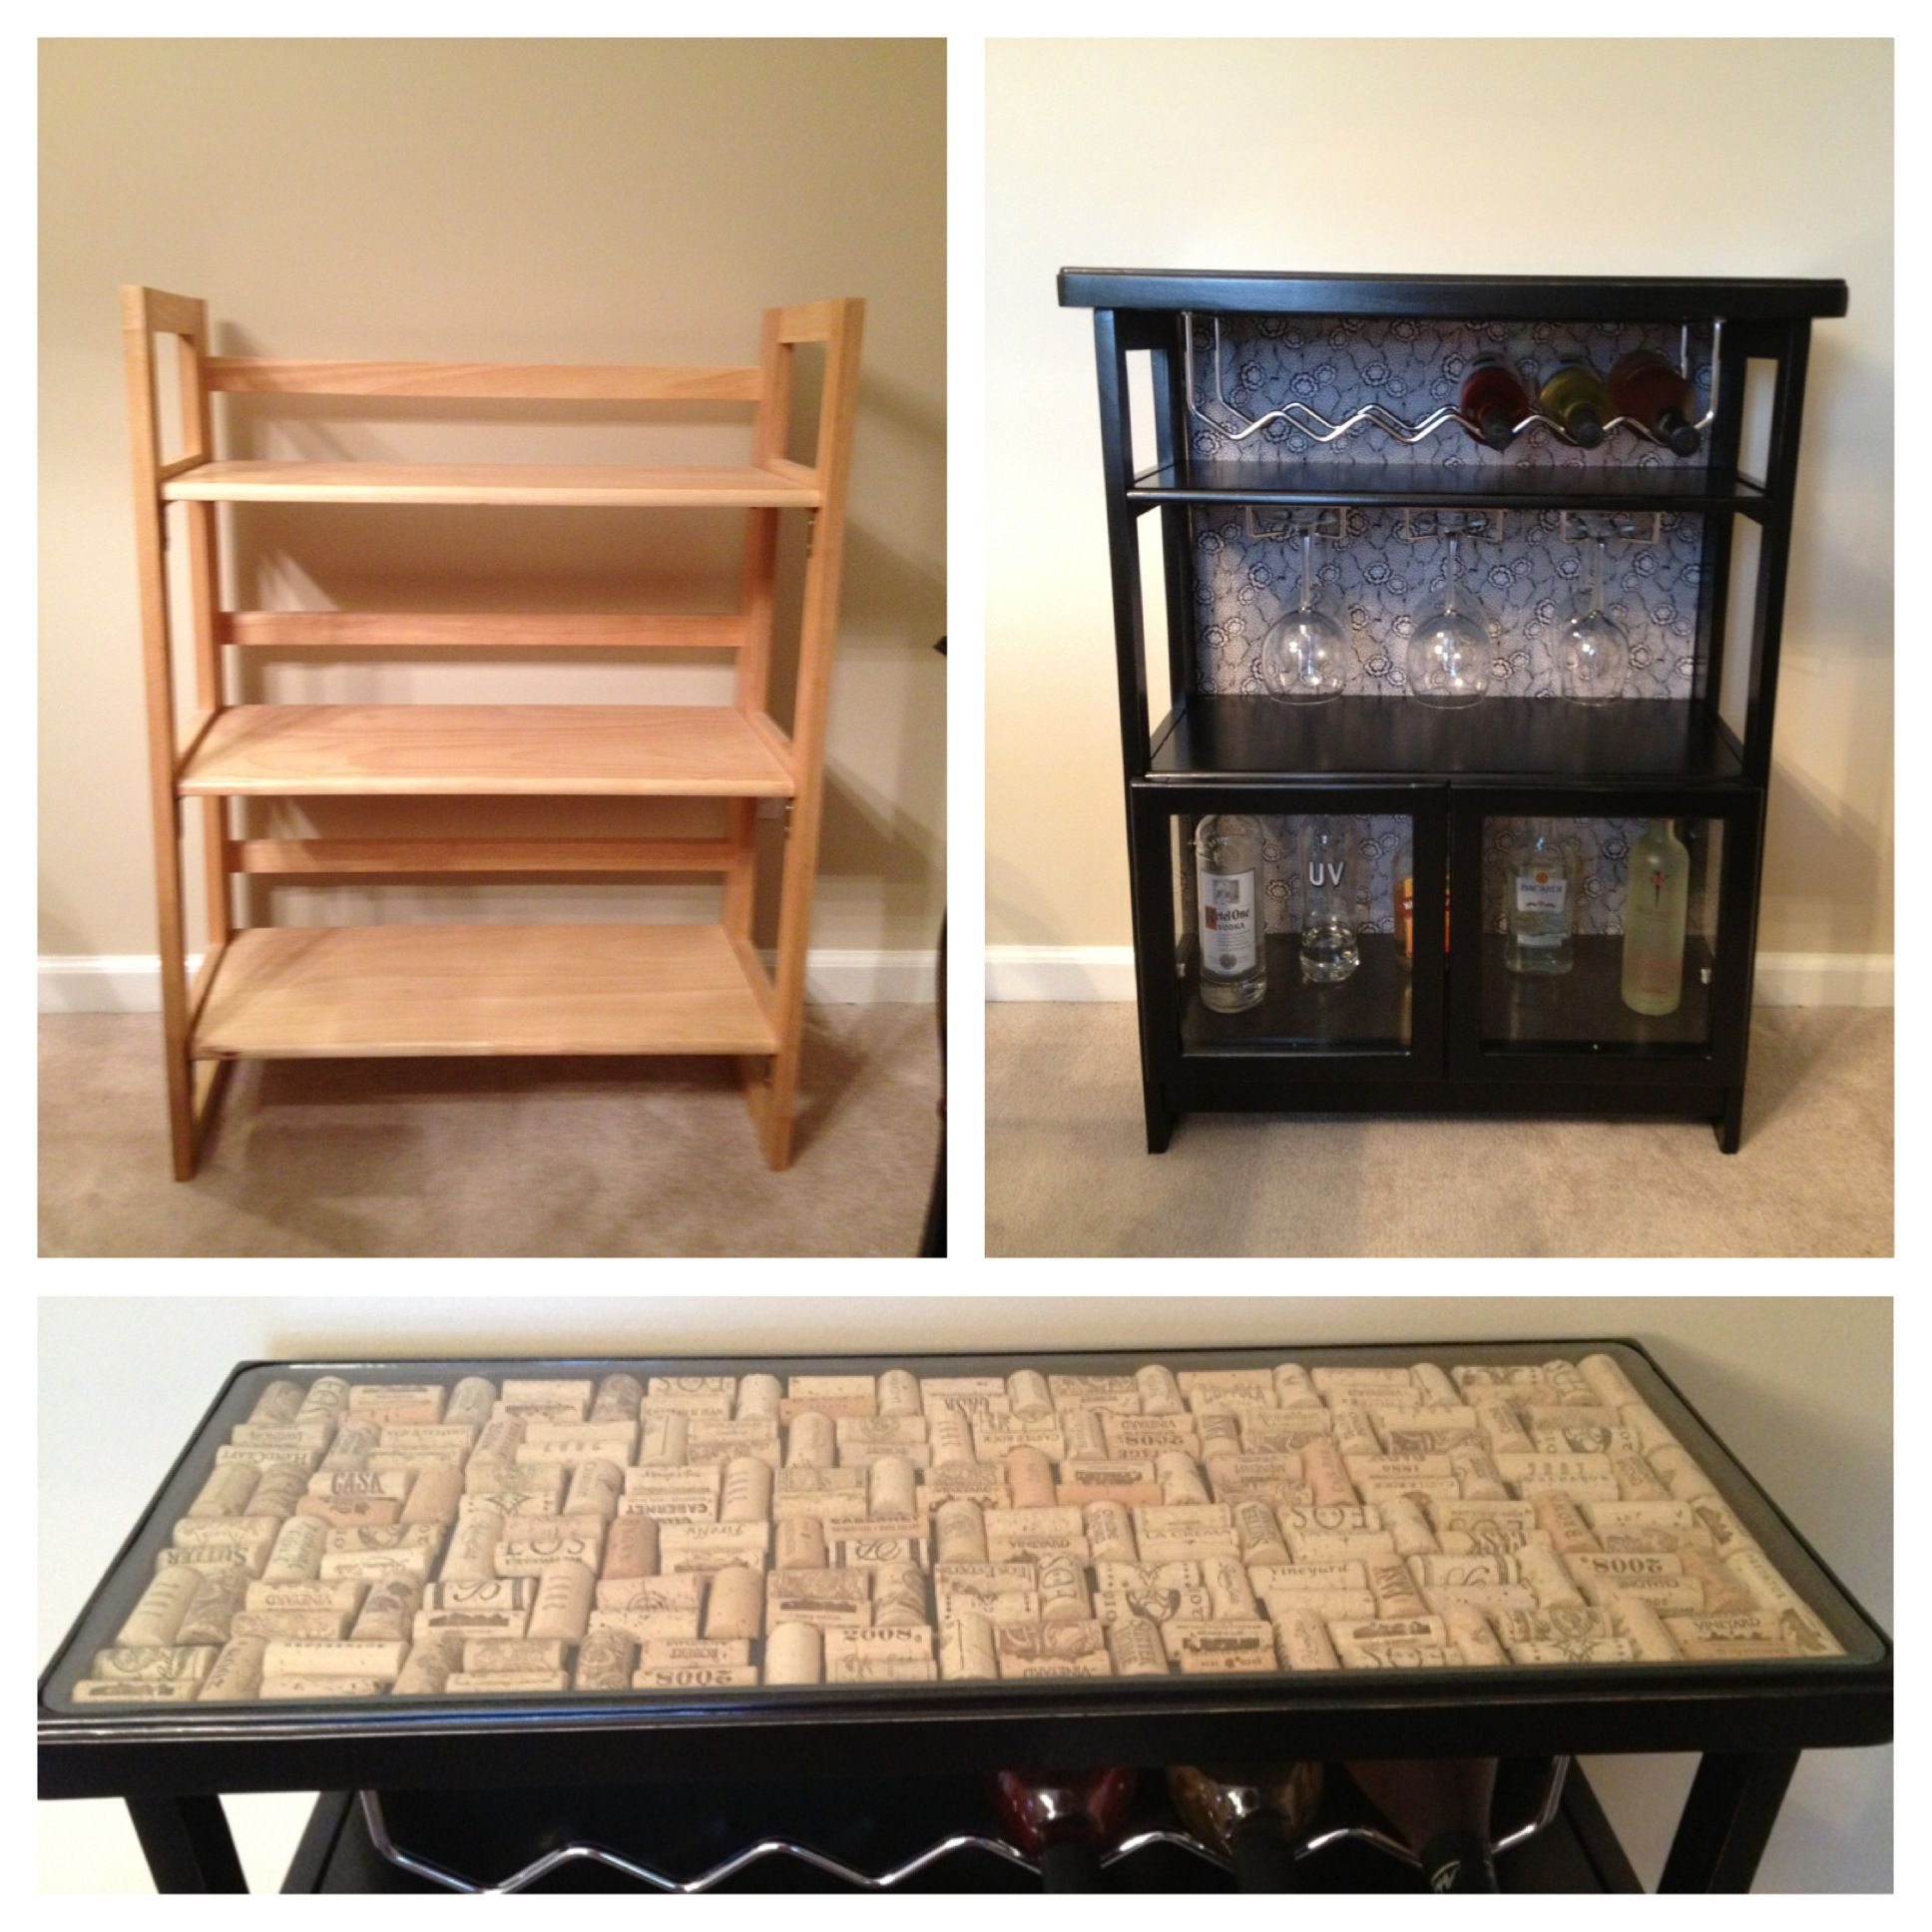 Cheap bookcase into liquor cabinet | Home ideas | Pinterest ...